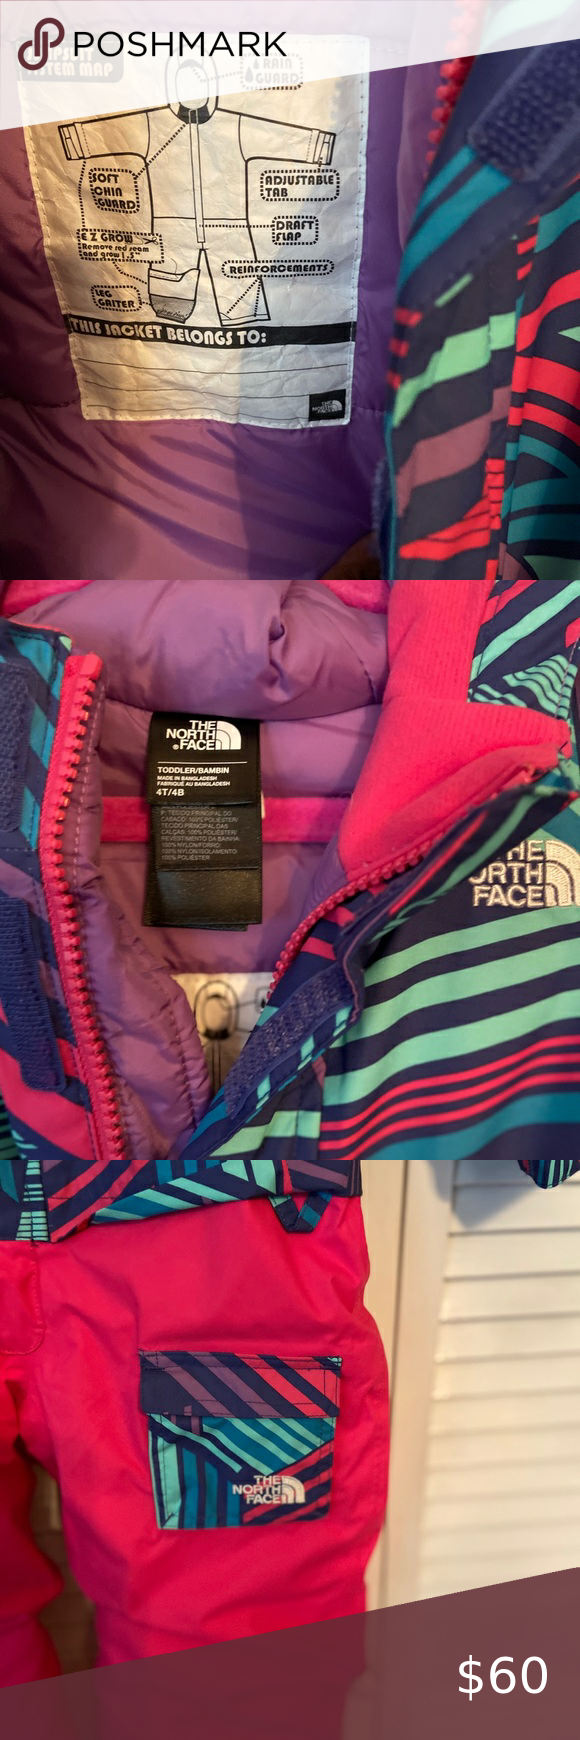 North Face Toddler 4t Snowsuit North Face Toddler Snowsuit Extendable Sleeves And Leg For Length The North Face Ja Snow Suit Toddler Snowsuit North Face Girls [ 1740 x 580 Pixel ]